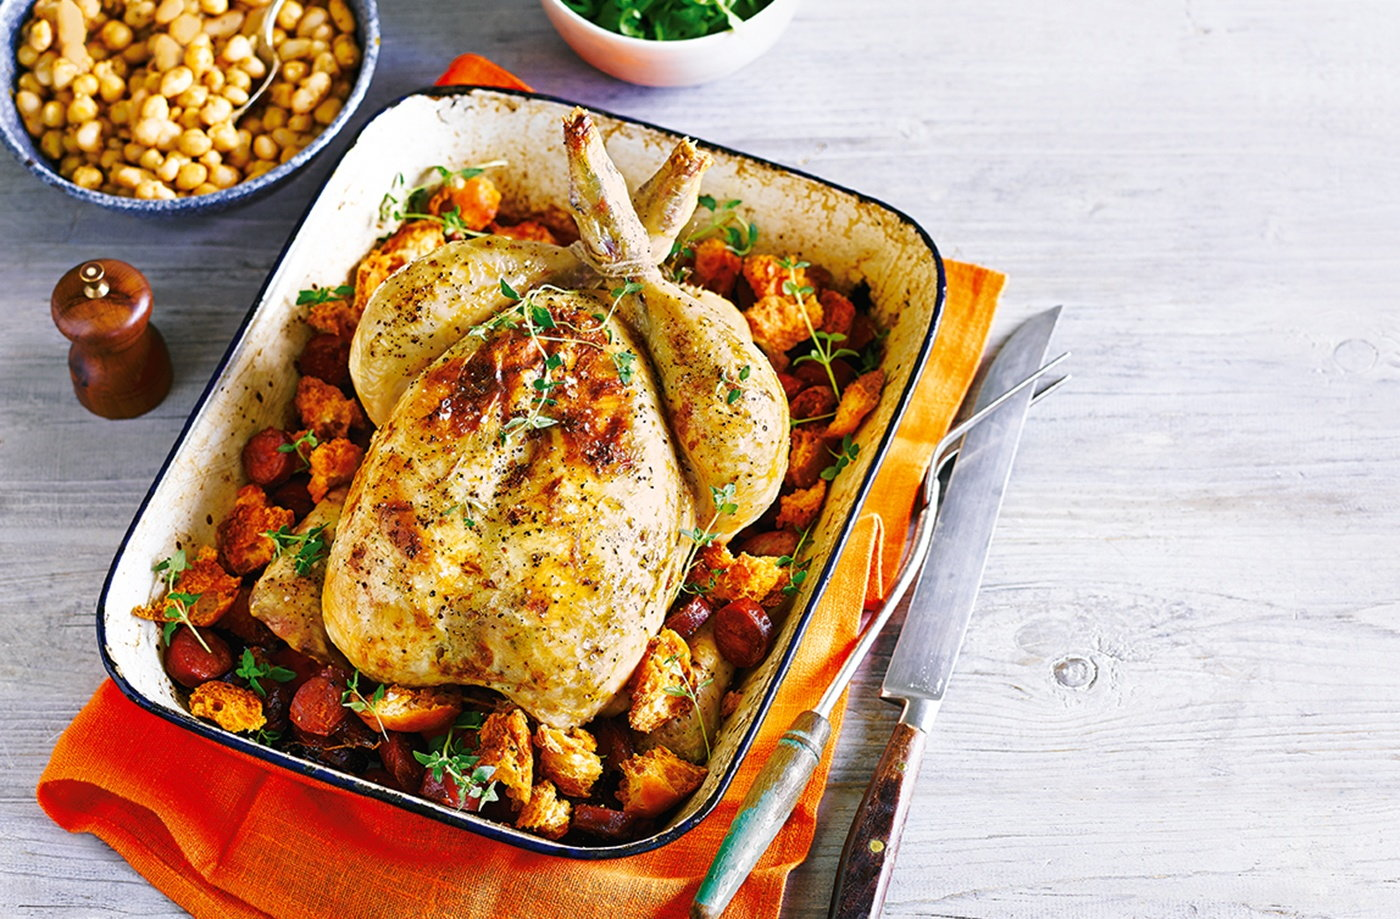 Lemon and thyme roast chicken with chorizo and ciabatta croutons